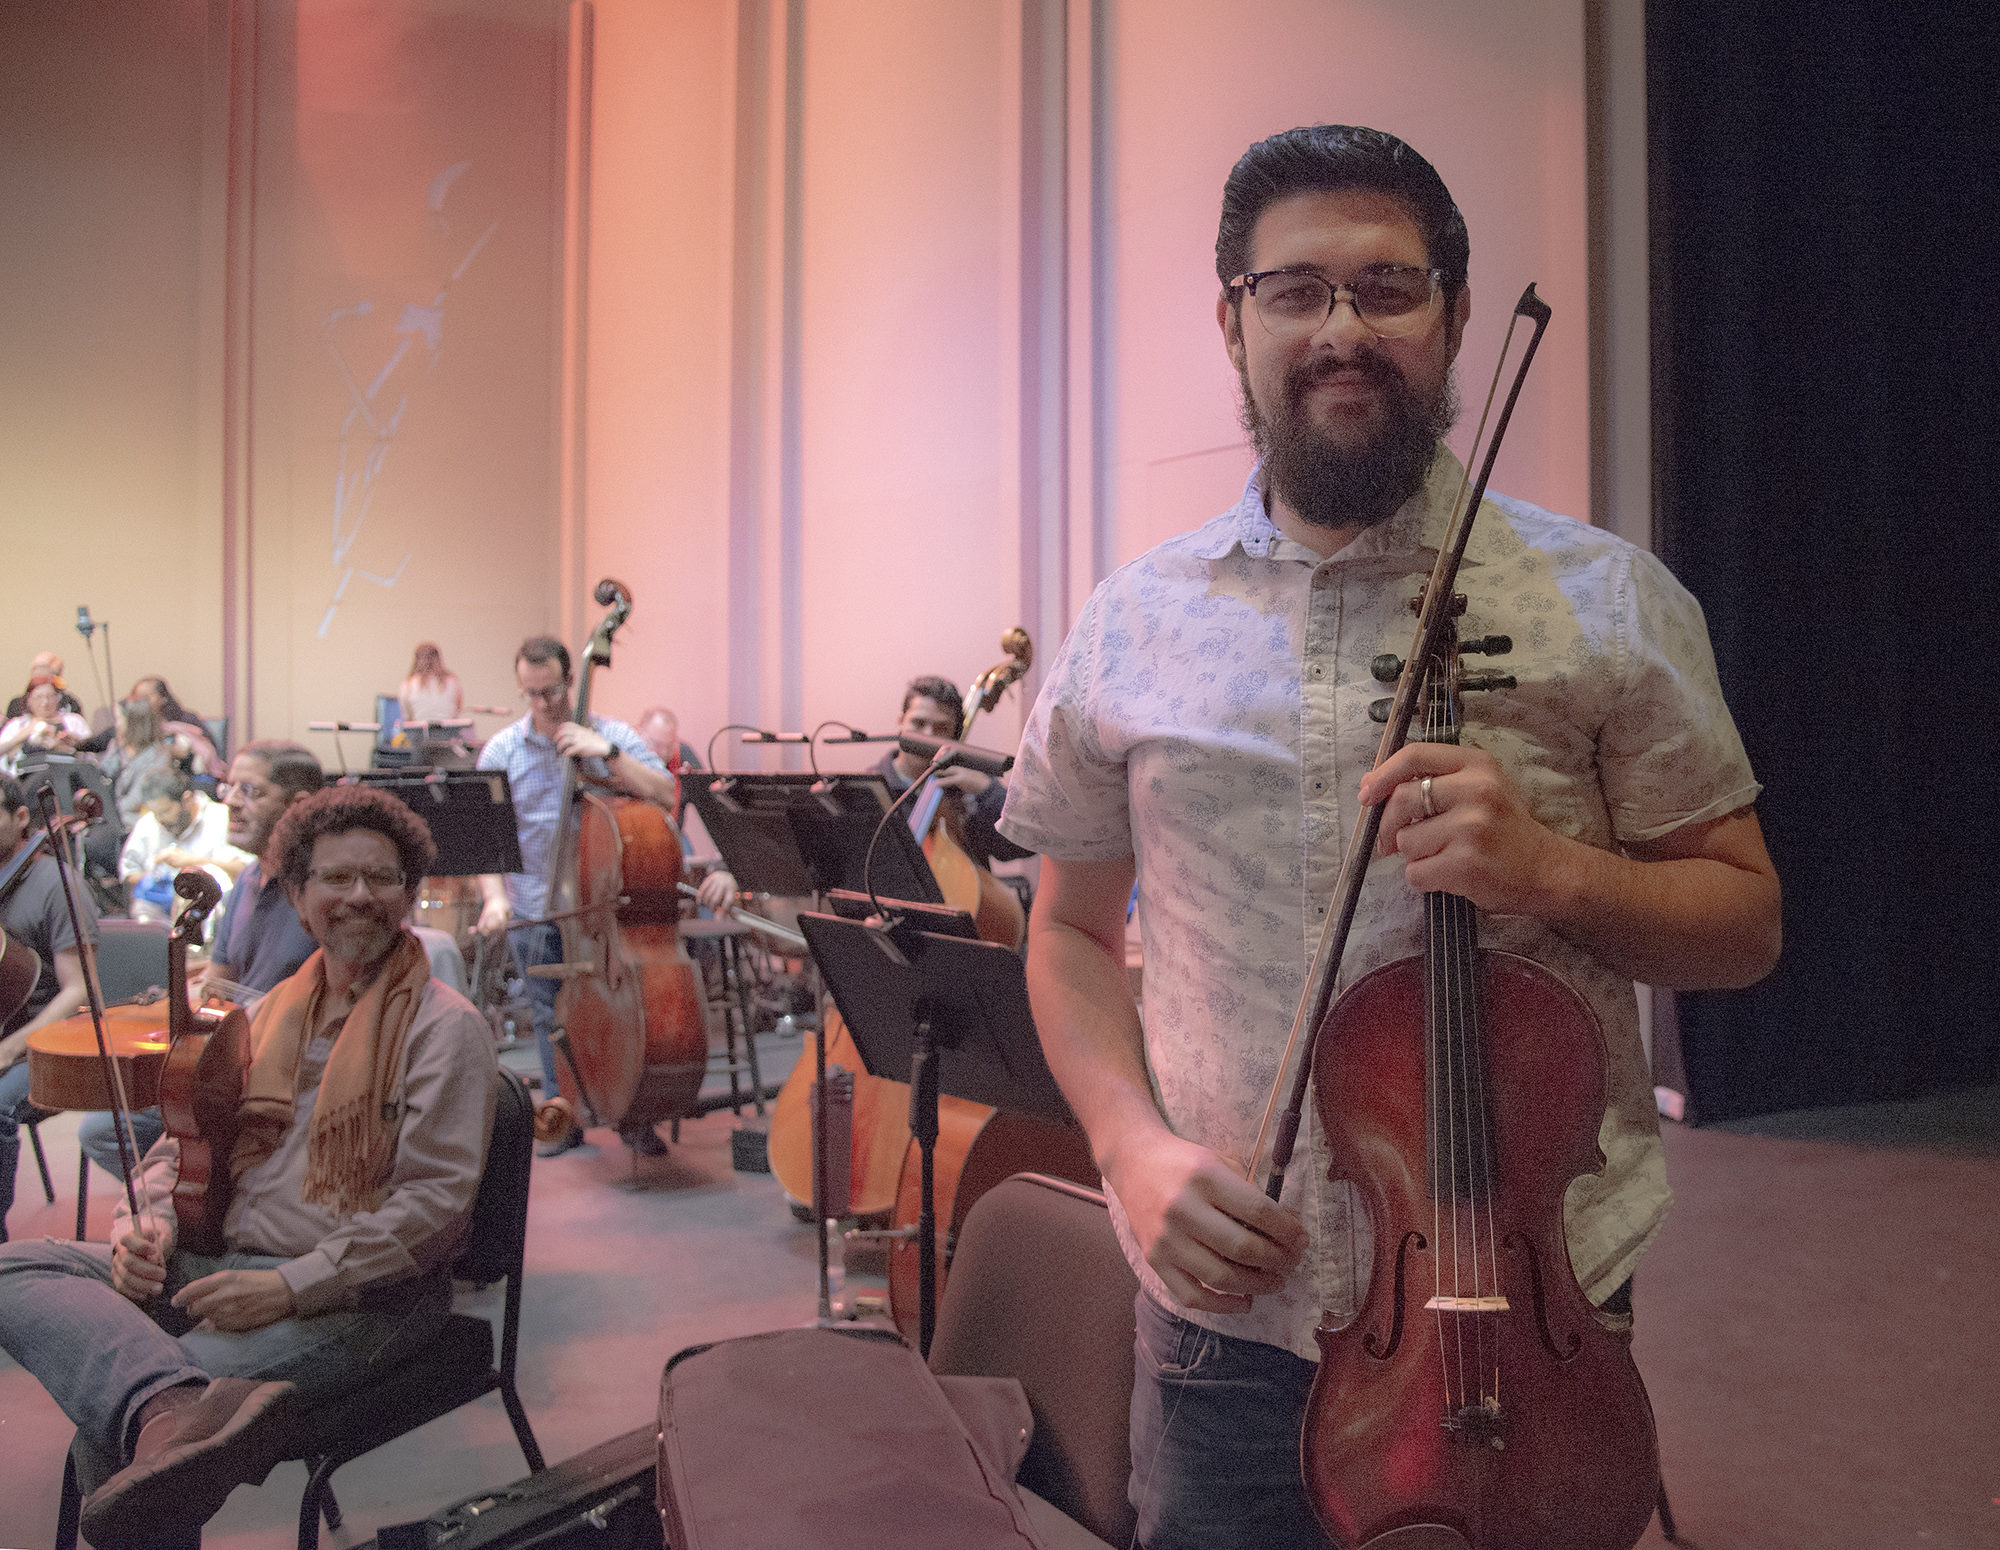 Violist Edgardo Rosaly Sampoll said musicians still managed to meet up for informal practices despite the chaos after the hurricane. He says he is glad the orchestra has. found a way to give back to the community through relief concerts. Photo by Erin McLoughlin